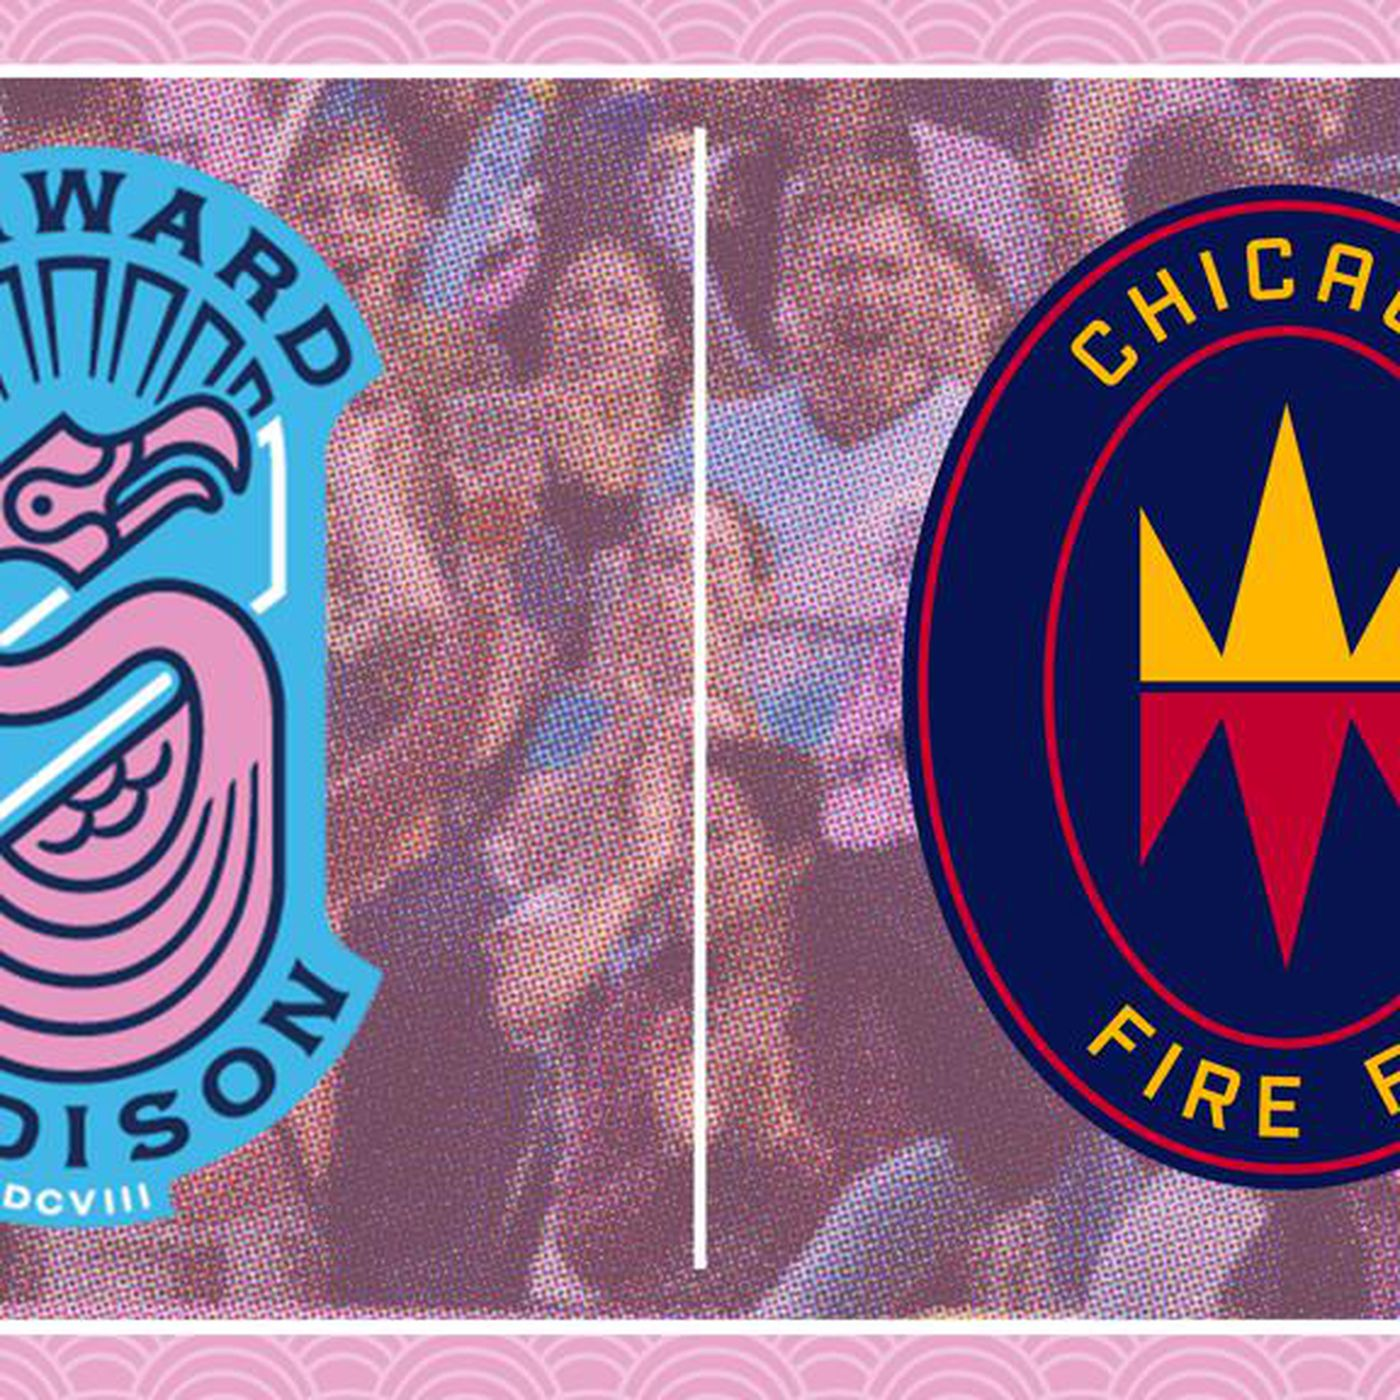 Forward Madison Fc Announces Affiliation Agreement With Chicago